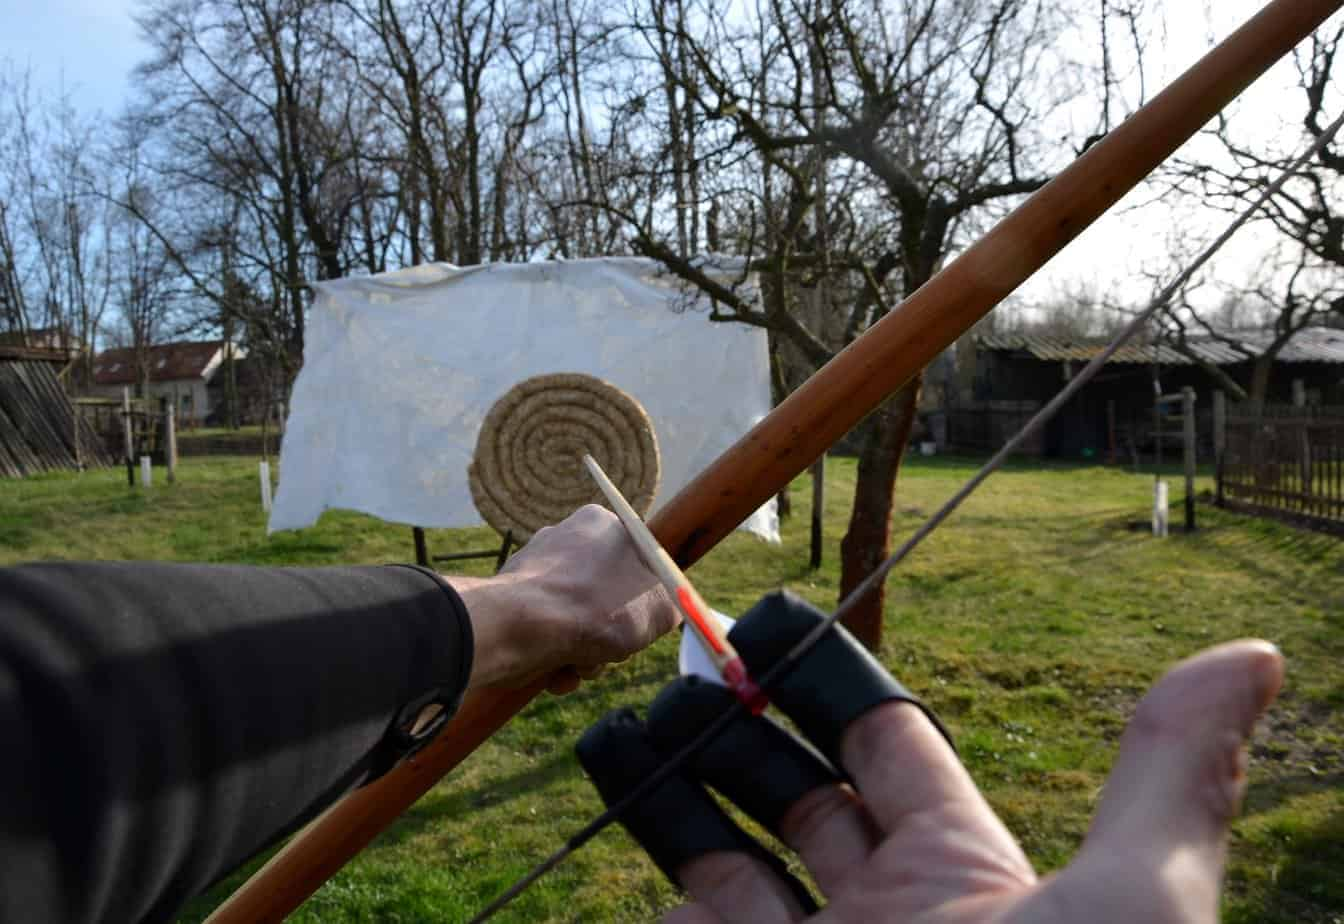 how to aim in archery